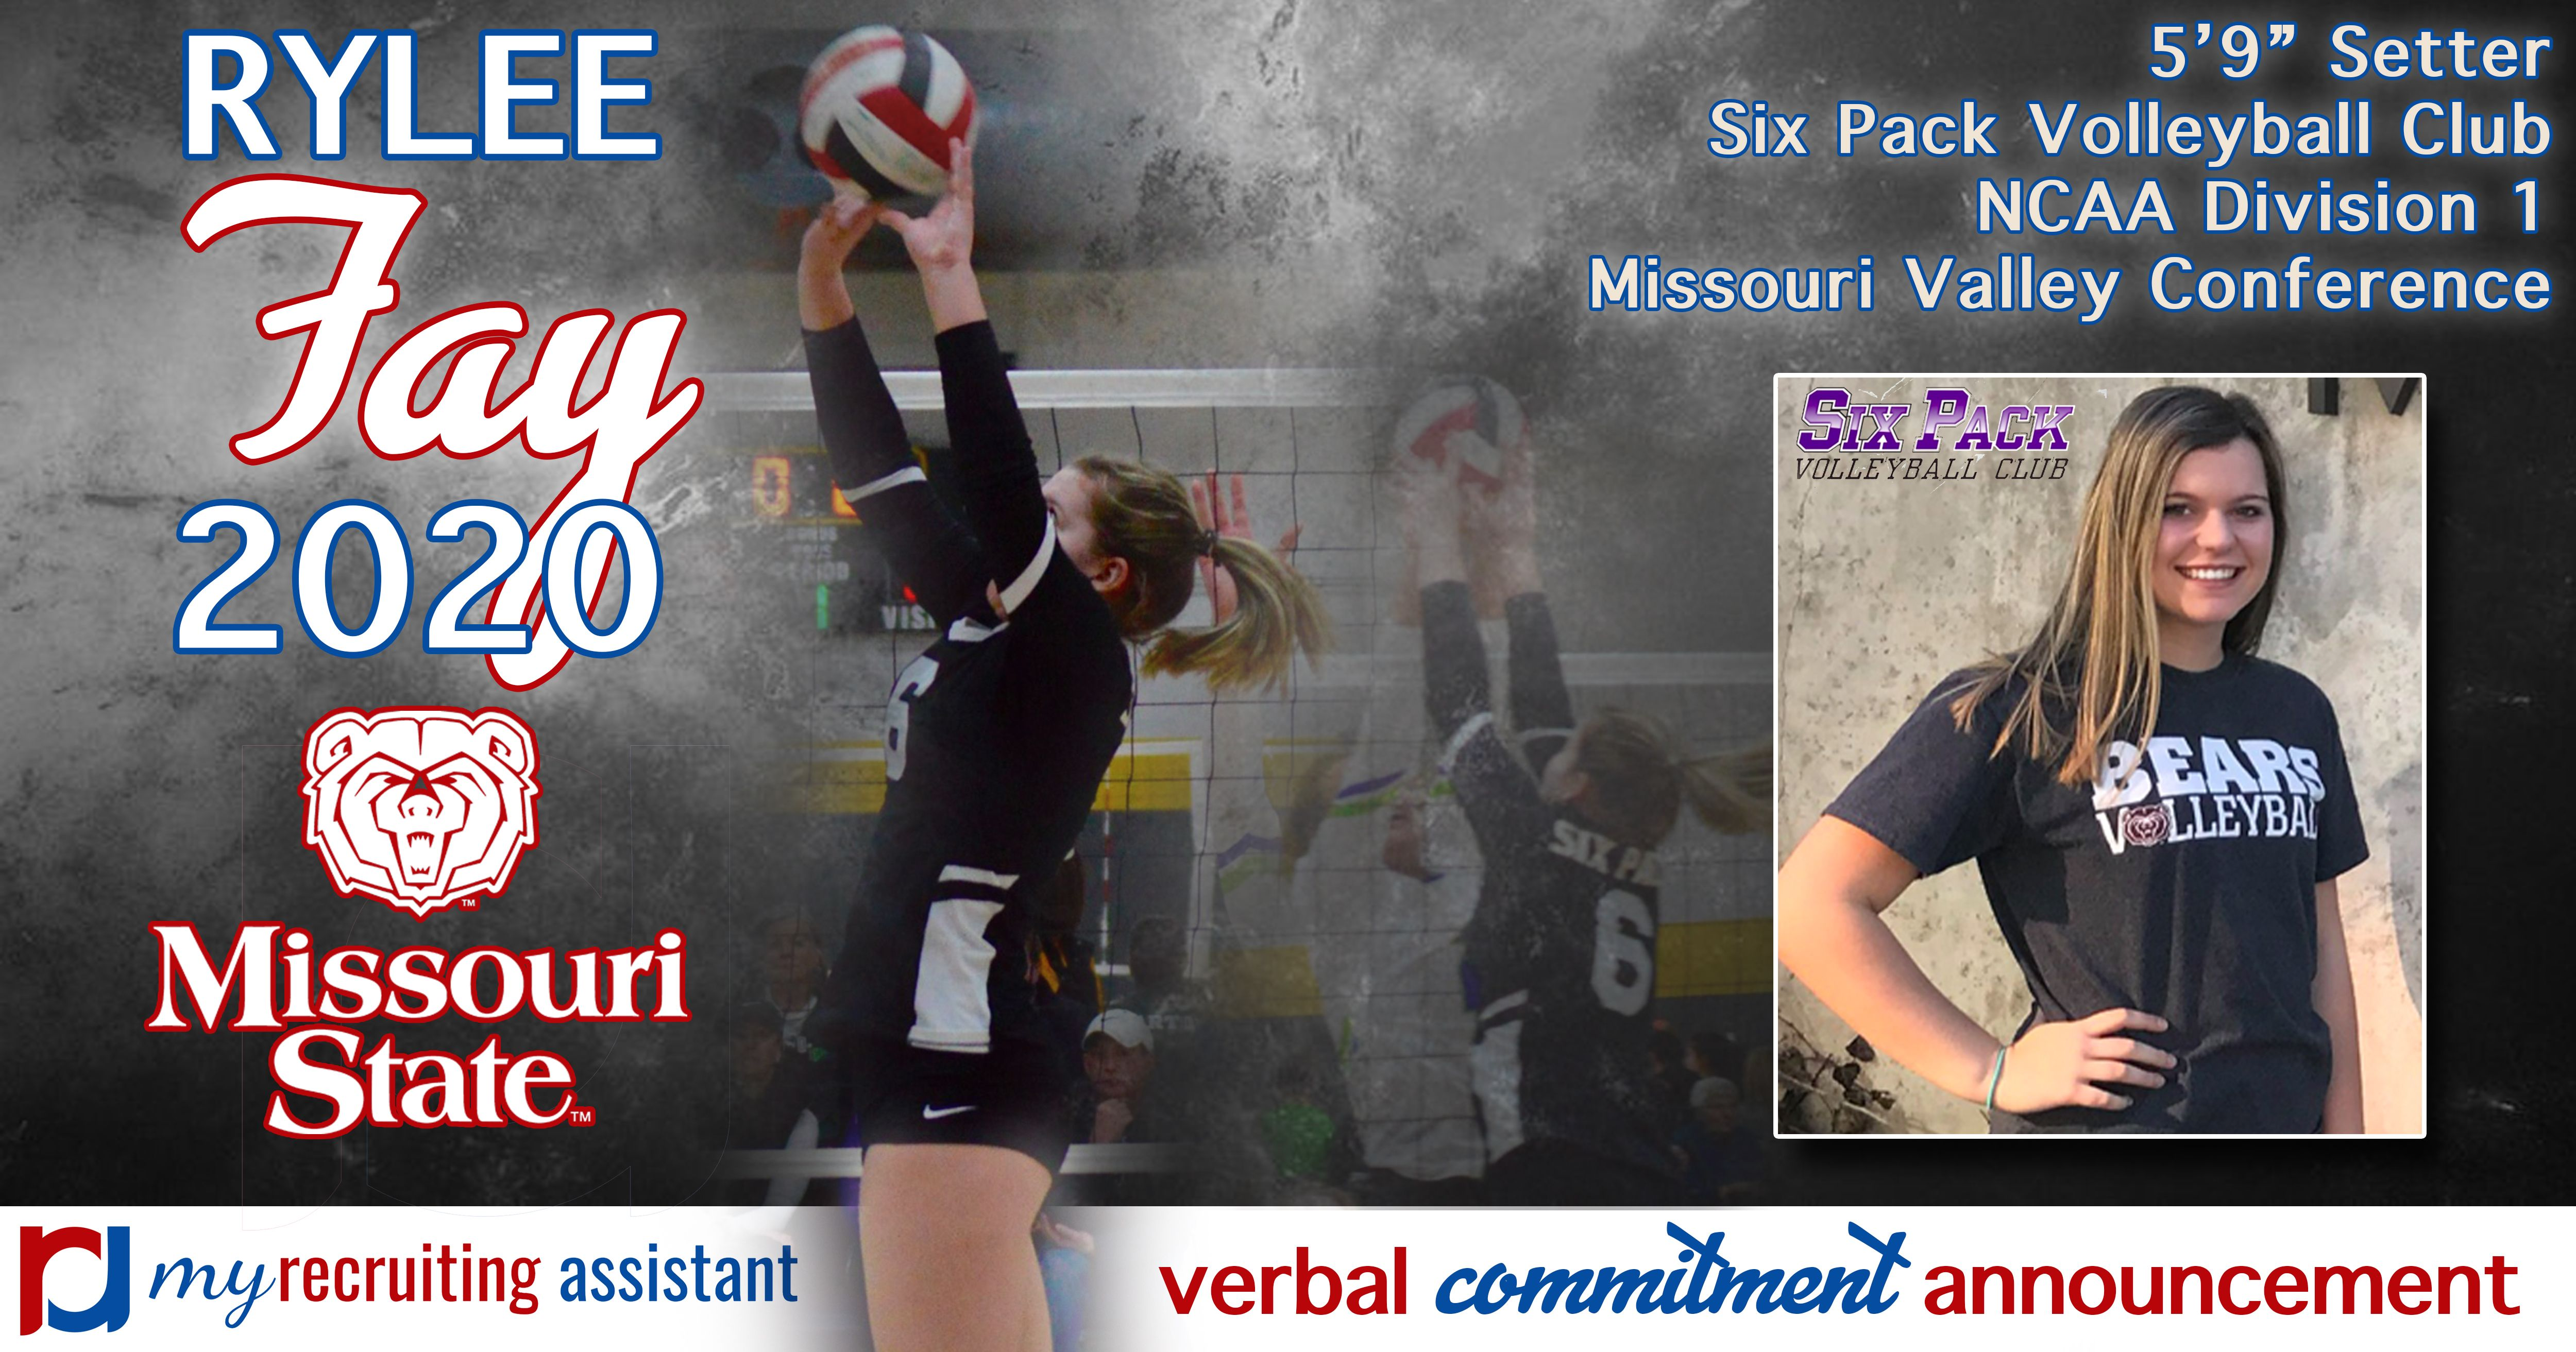 Class Of 2020 Ncaa Division I Missouri State Volleyball Commit Missouri State Missouri Valley Recruitment